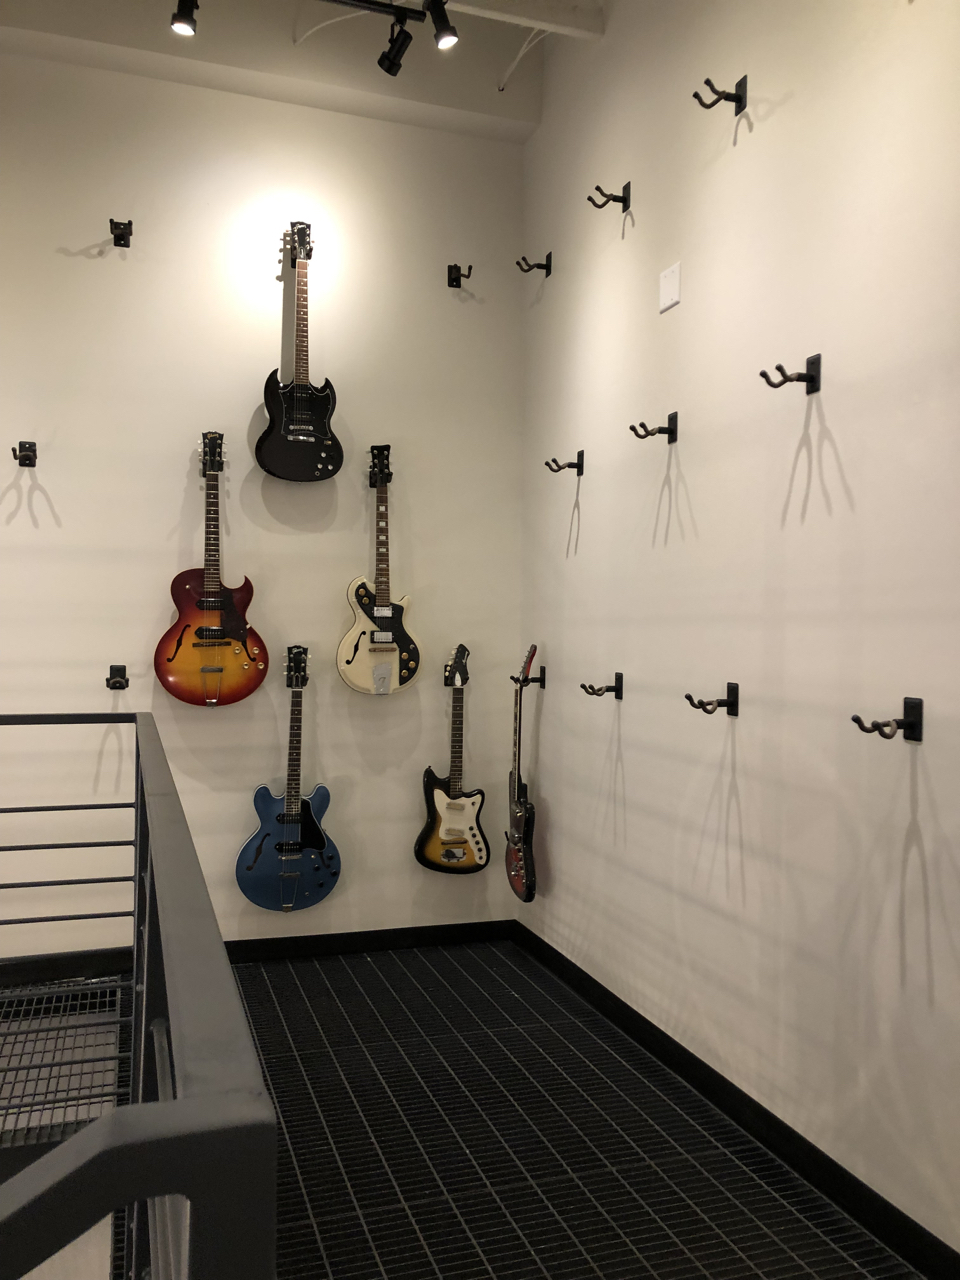 Moving the guitars from the house to the new instrument room was a big job full of multiple trips up and down the narrow old staircase of the house and the new metal staircase in the storage room.